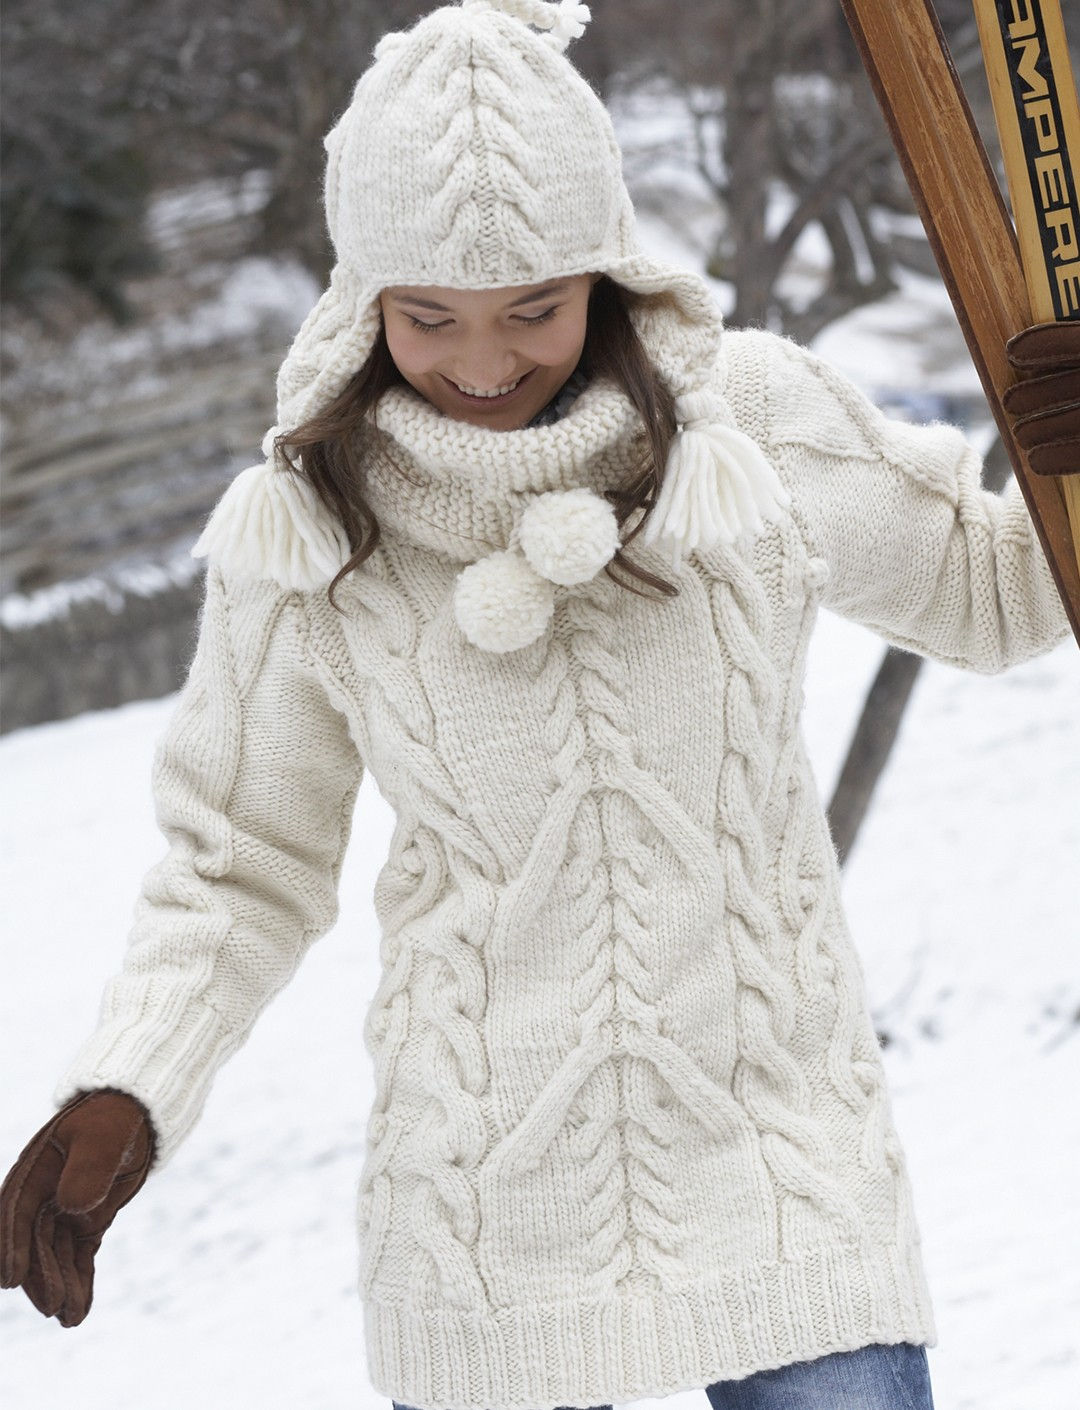 Free Knitting Pattern Baby Aran Cardigan : Patons Big Aran Sweater and Earflap Hat, Knit Pattern ...